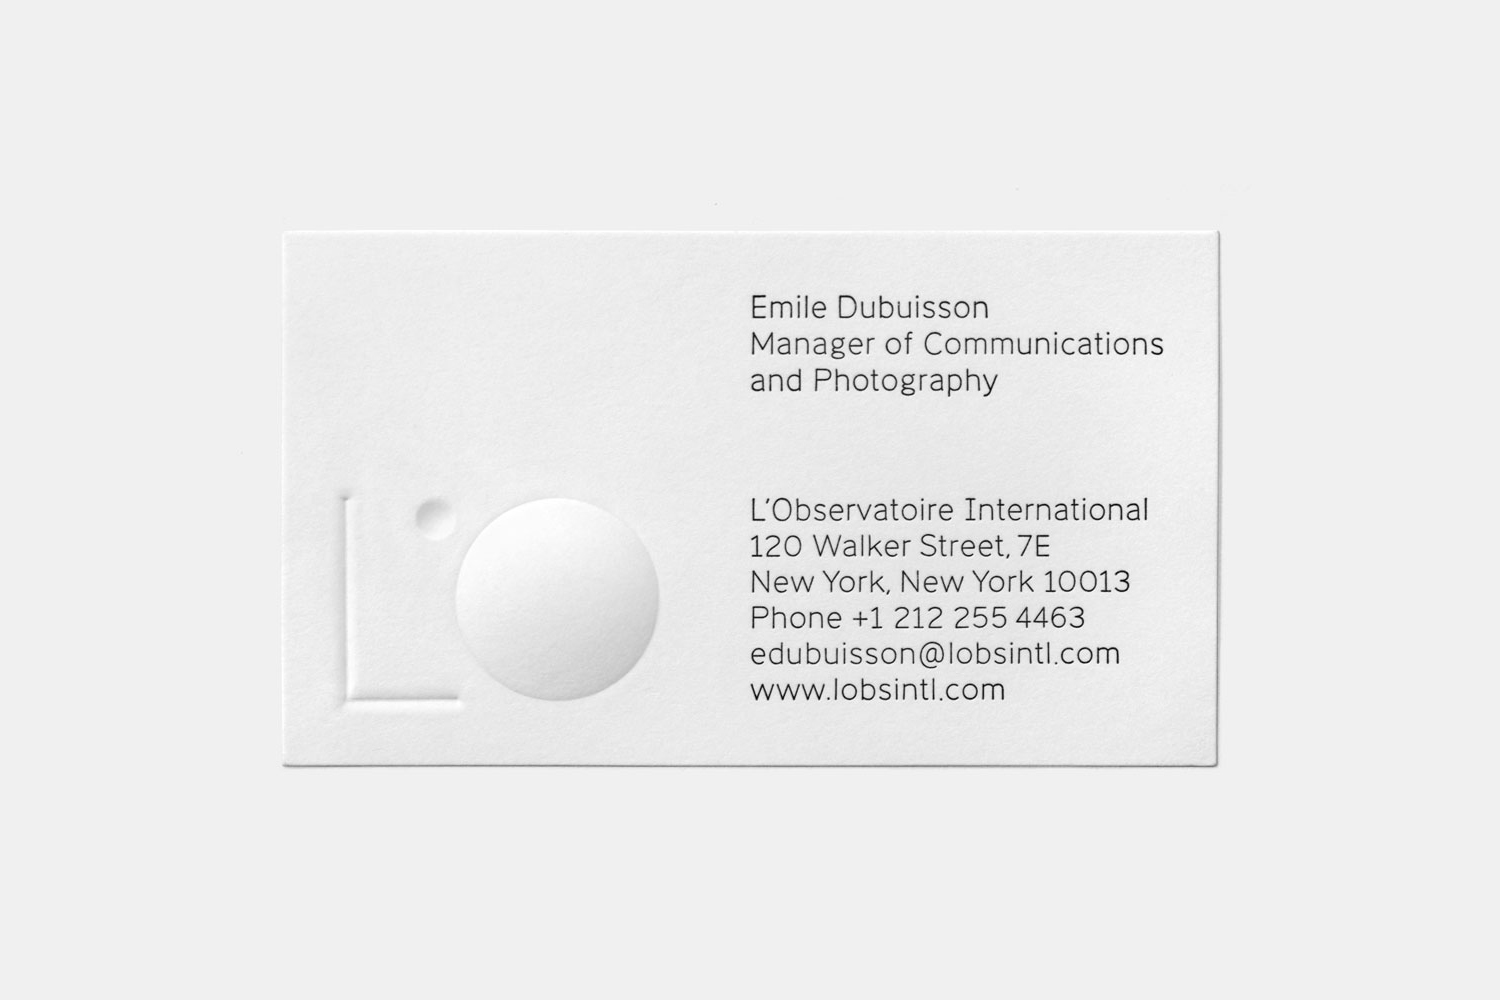 Branding and business card for L'Observatoire International by New York based design studio Triboro